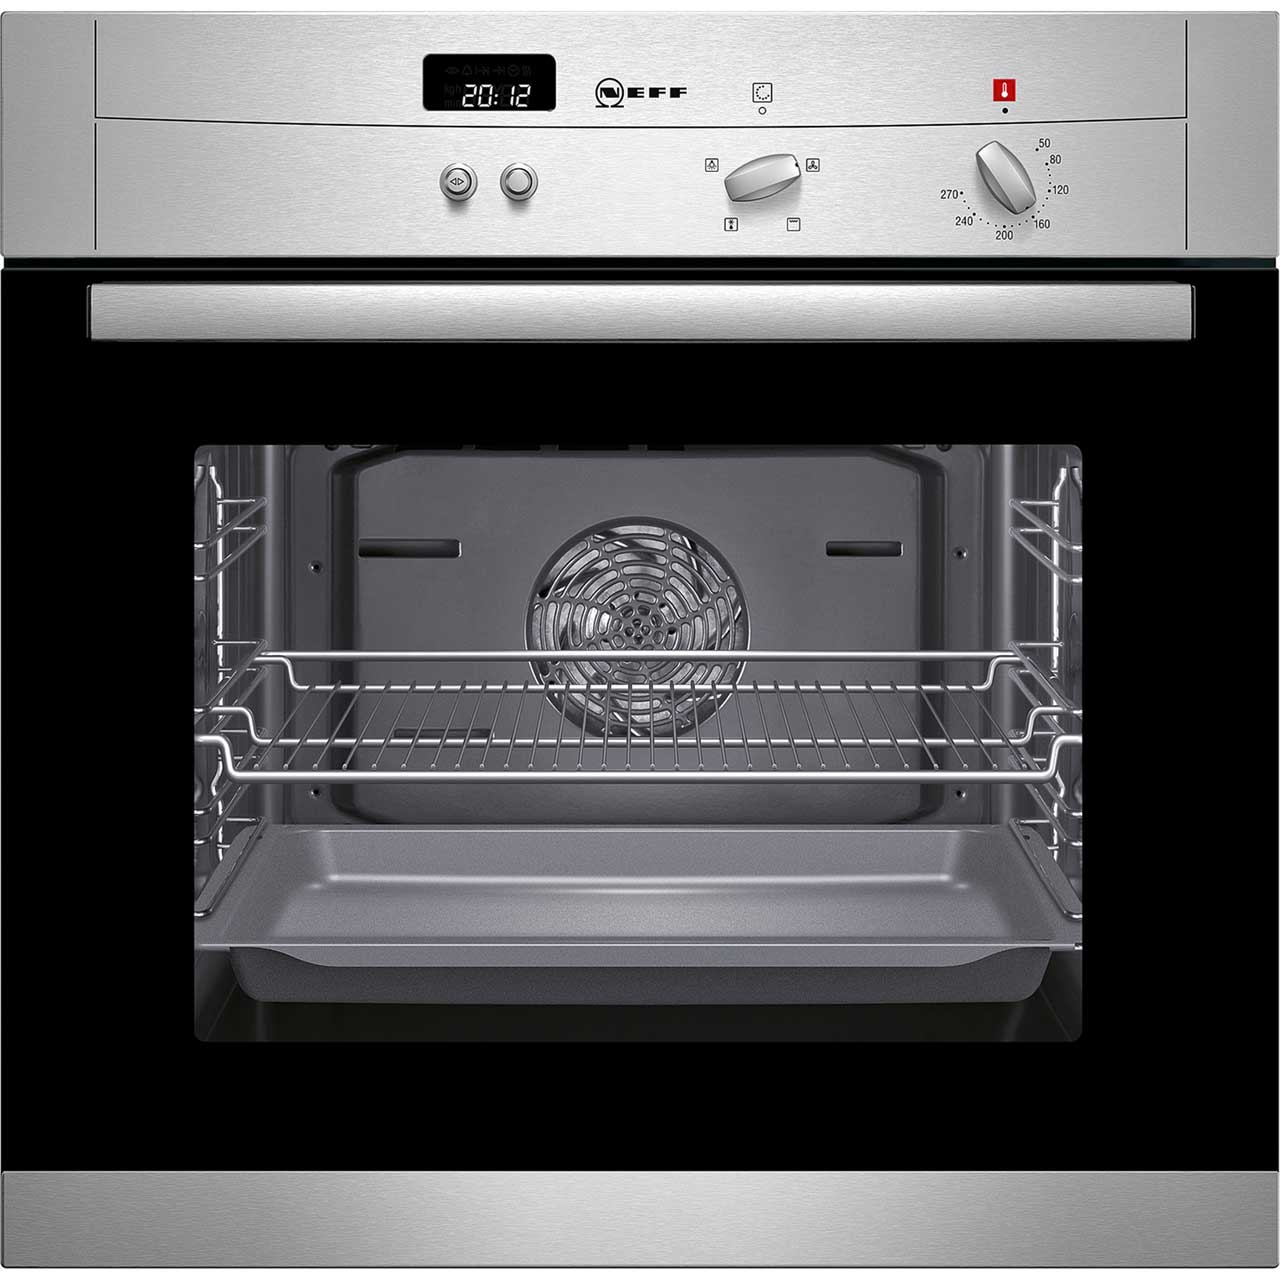 Uncategorized Neff Kitchen Appliances Reviews neff b12s22n3gb built in electric single oven stainless steel